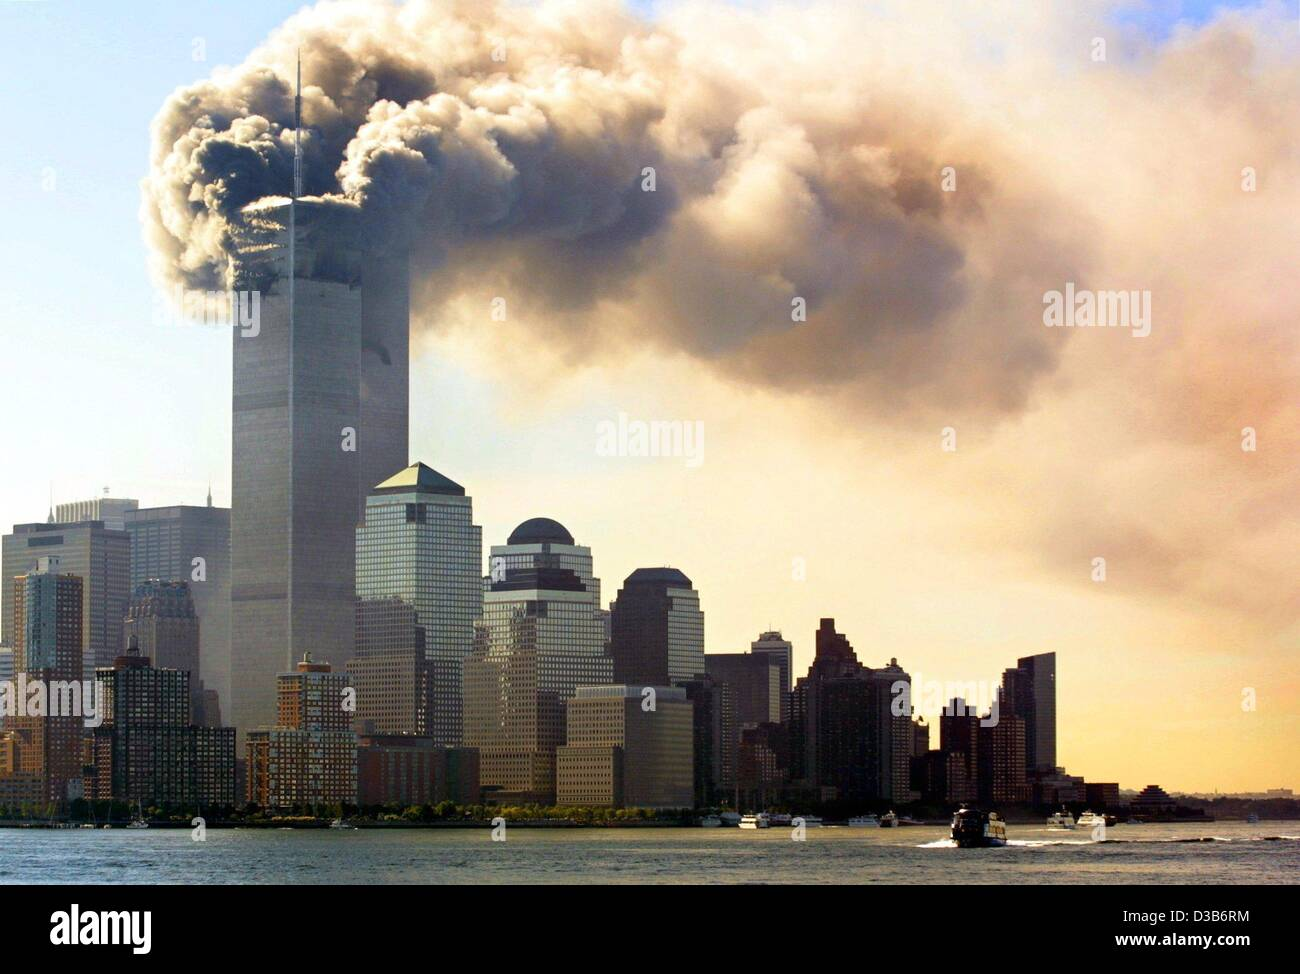 (dpa) - Clouds of smoke rise from the burning upper floors just before the twin towers of the World Trade Center Stock Photo